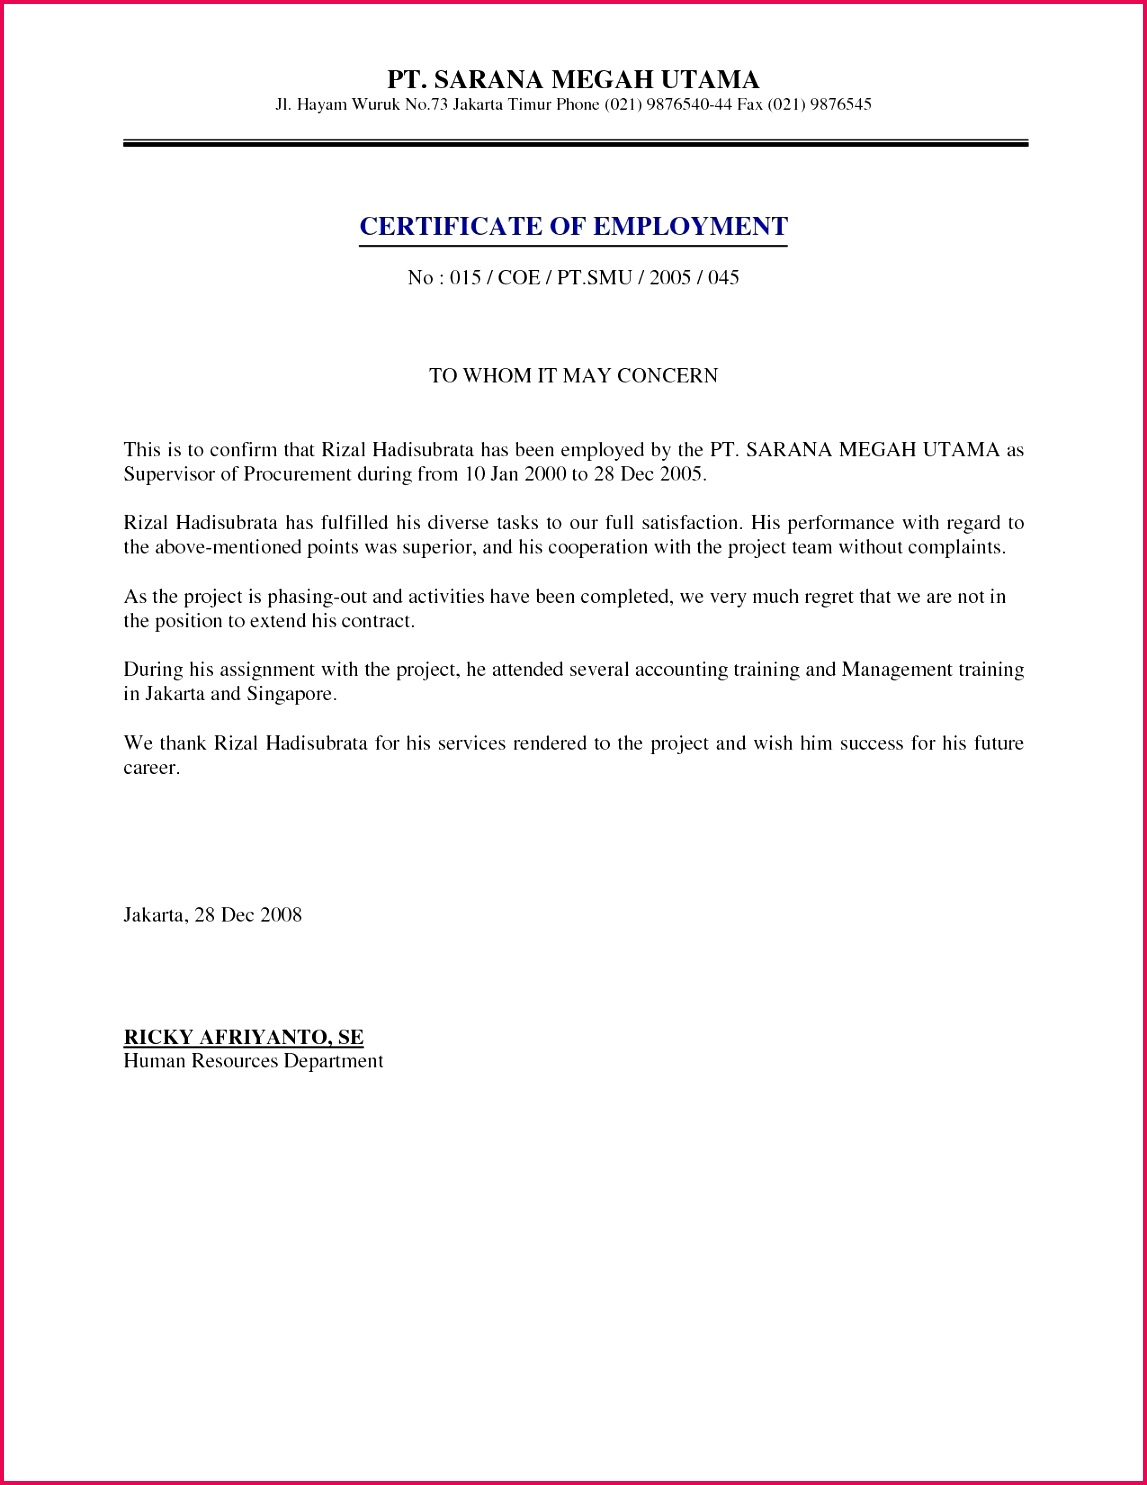 free salary certificate letter valid free proof employment to whom it may concern letter salary certificate